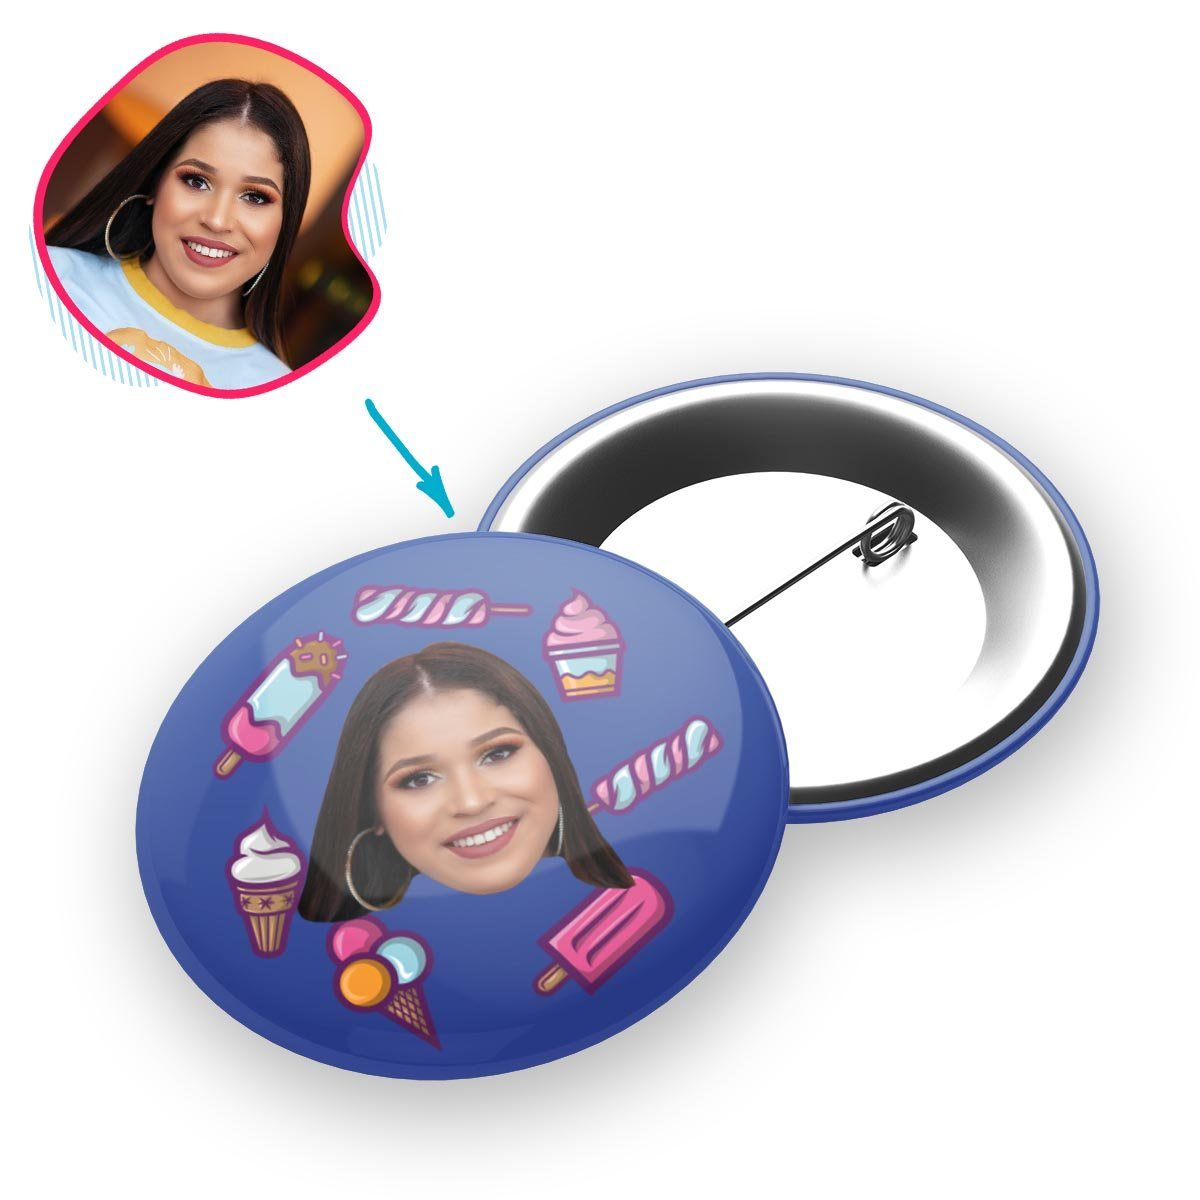 darkblue Candies pin personalized with photo of face printed on it